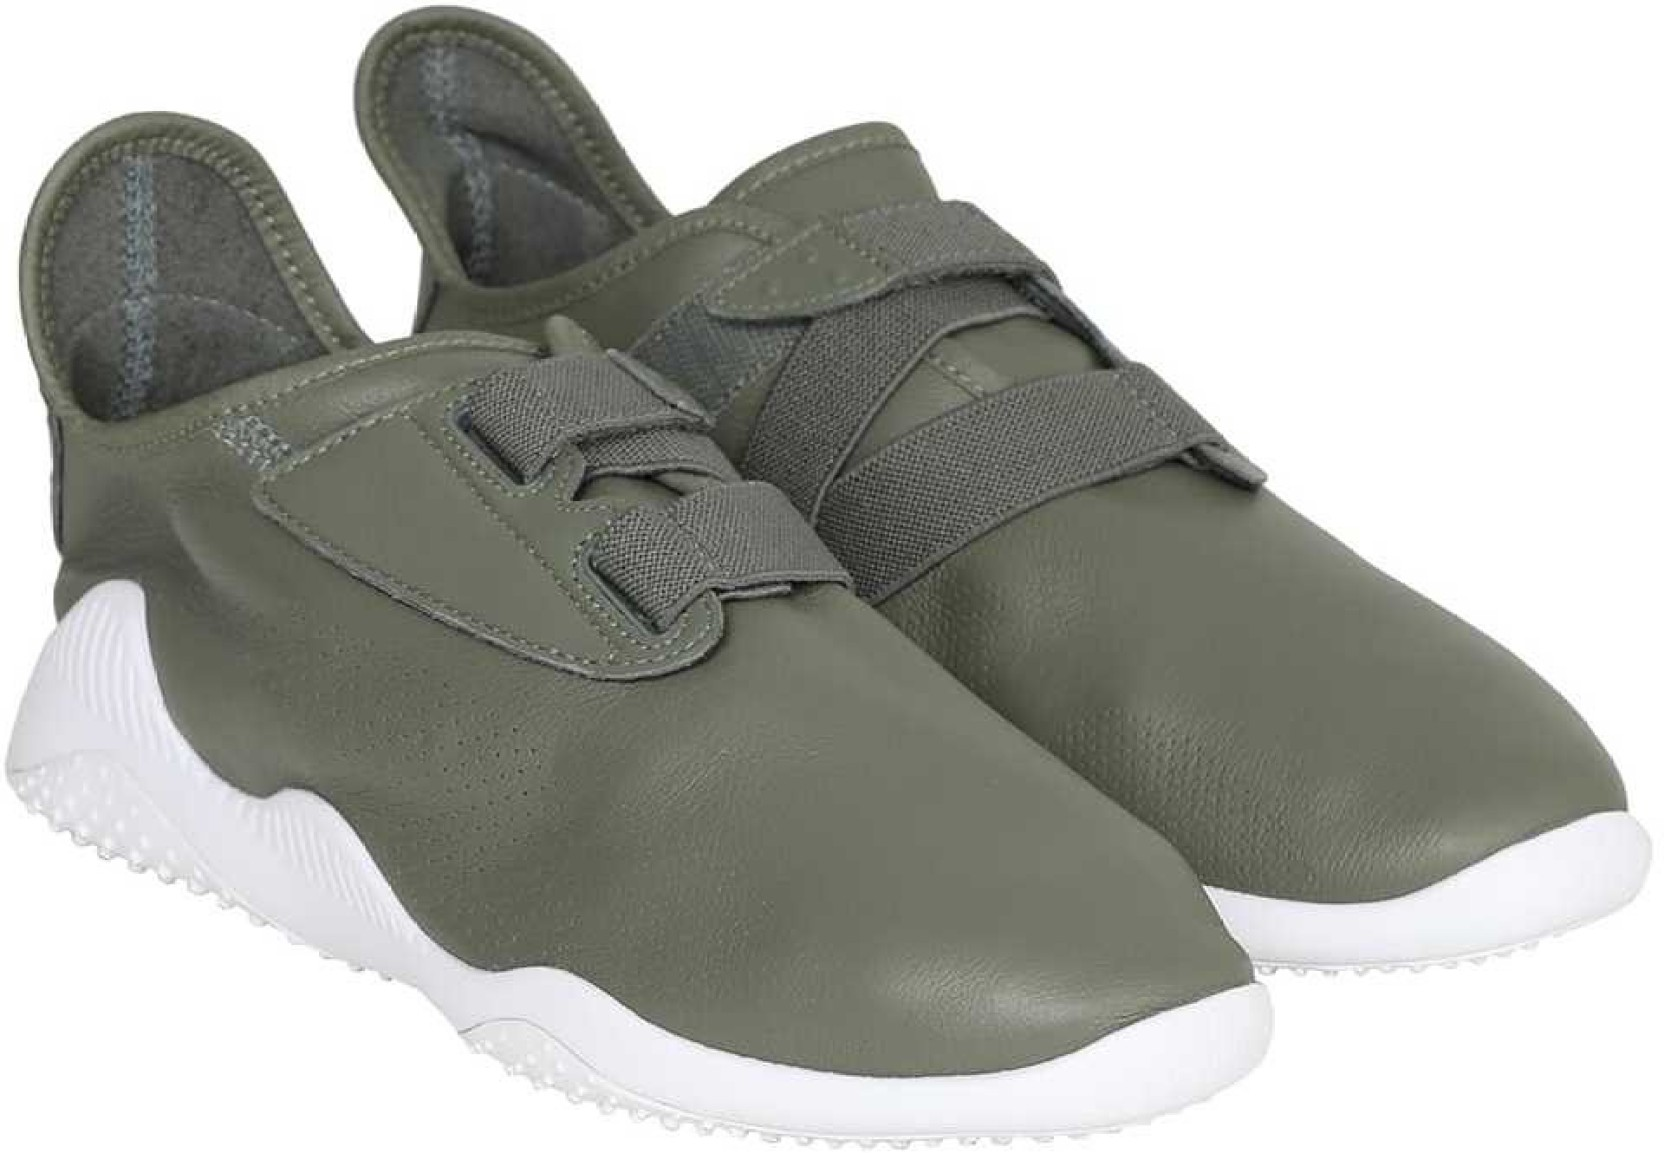 13dc07e0033244 Puma Mostro Eng. Leather Sneakers For Men - Buy Puma Mostro Eng ...